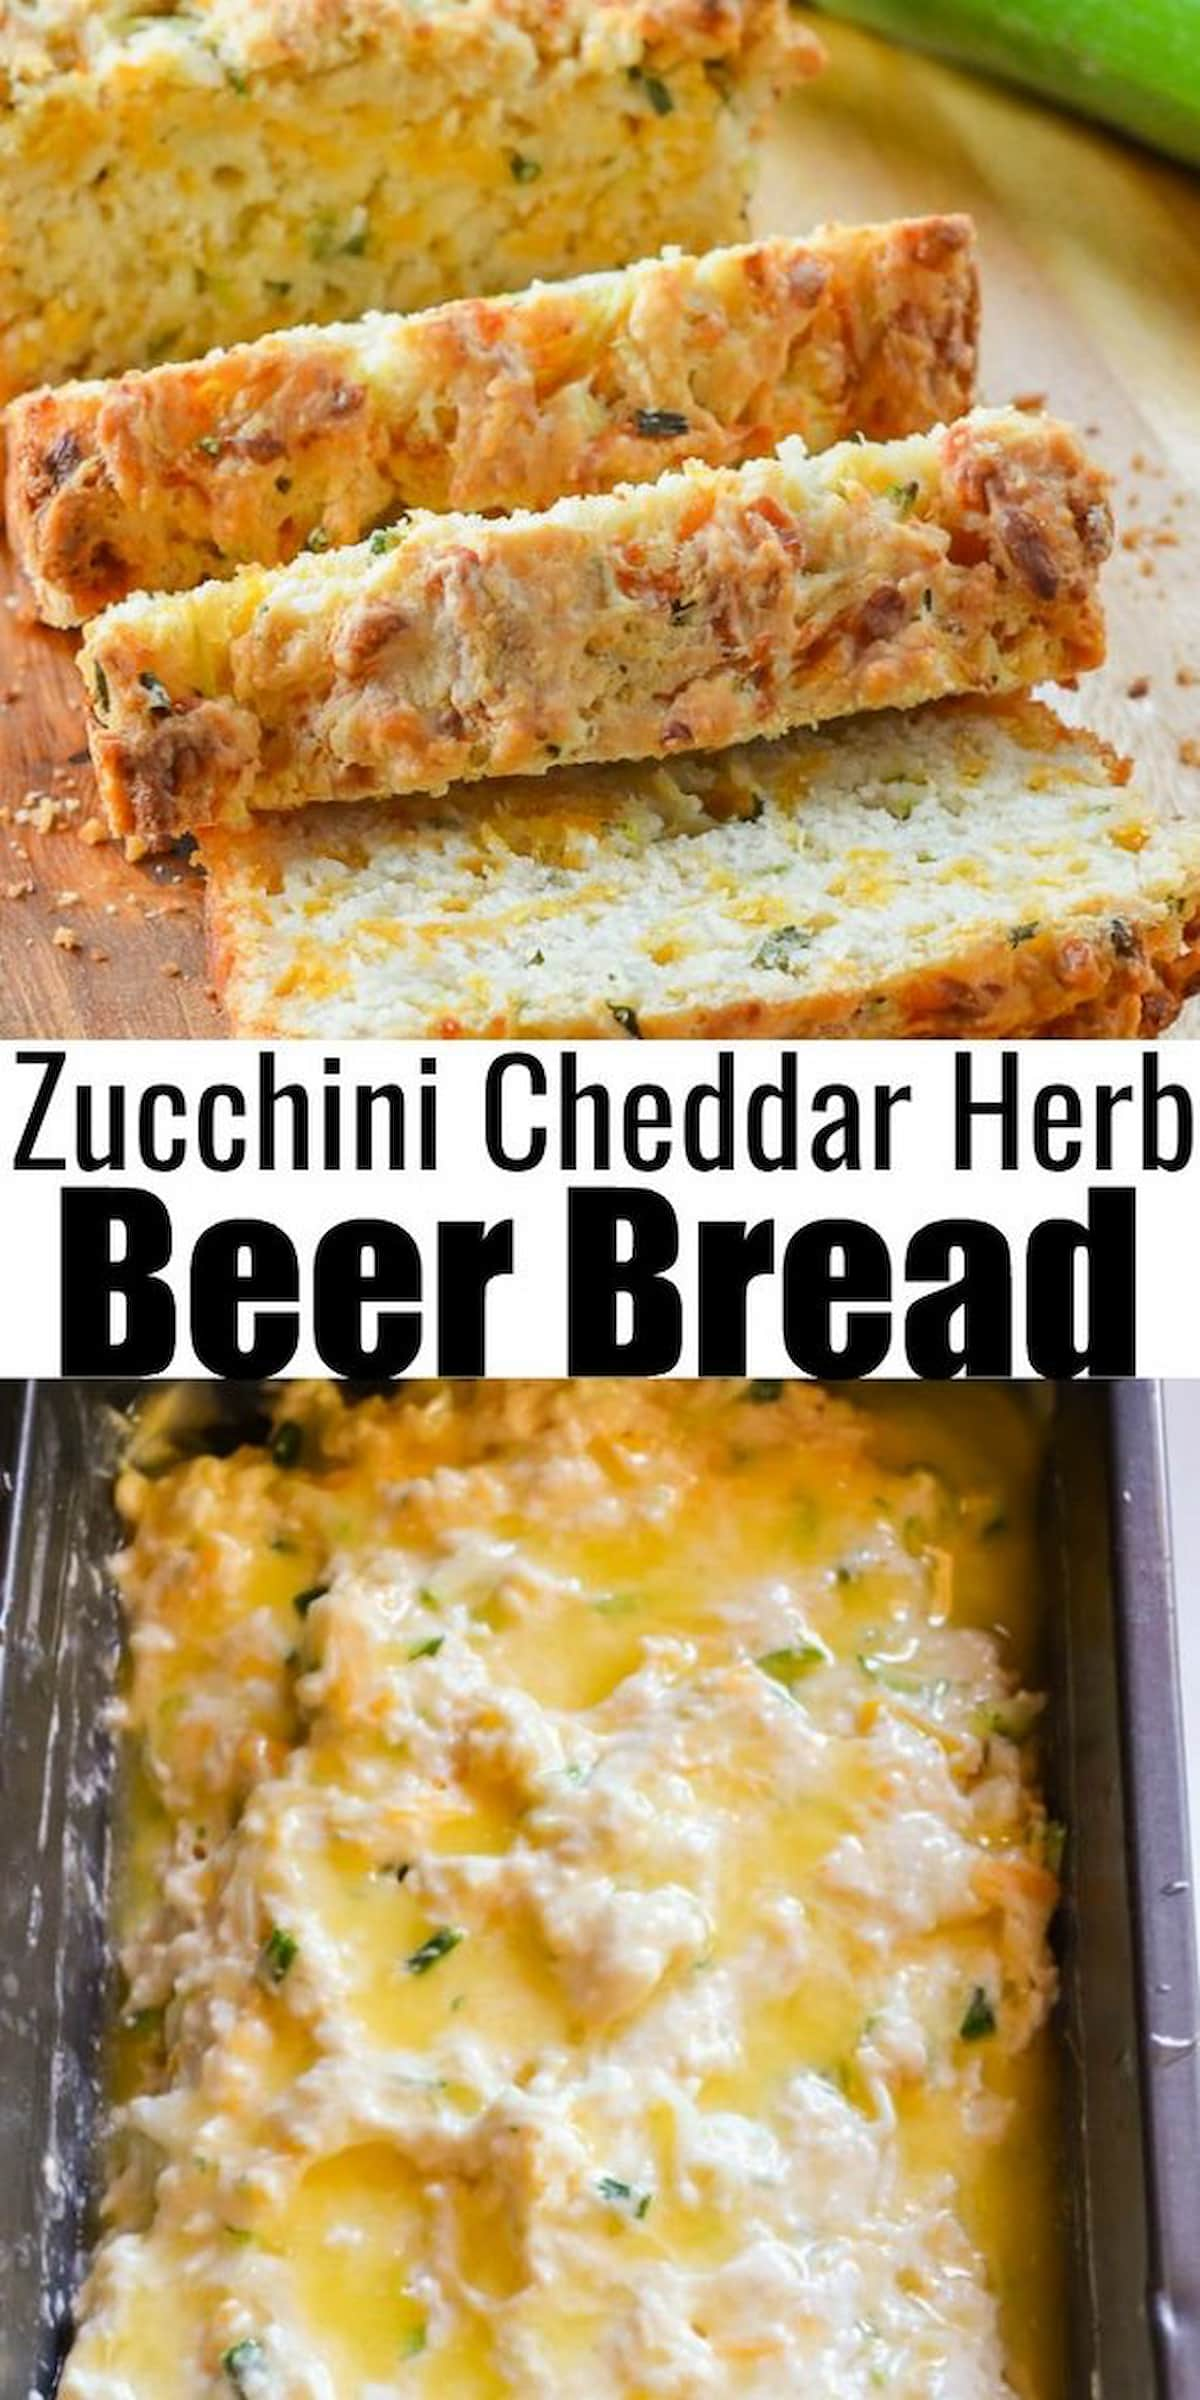 Zucchini Cheddar Cheese Beer Bread